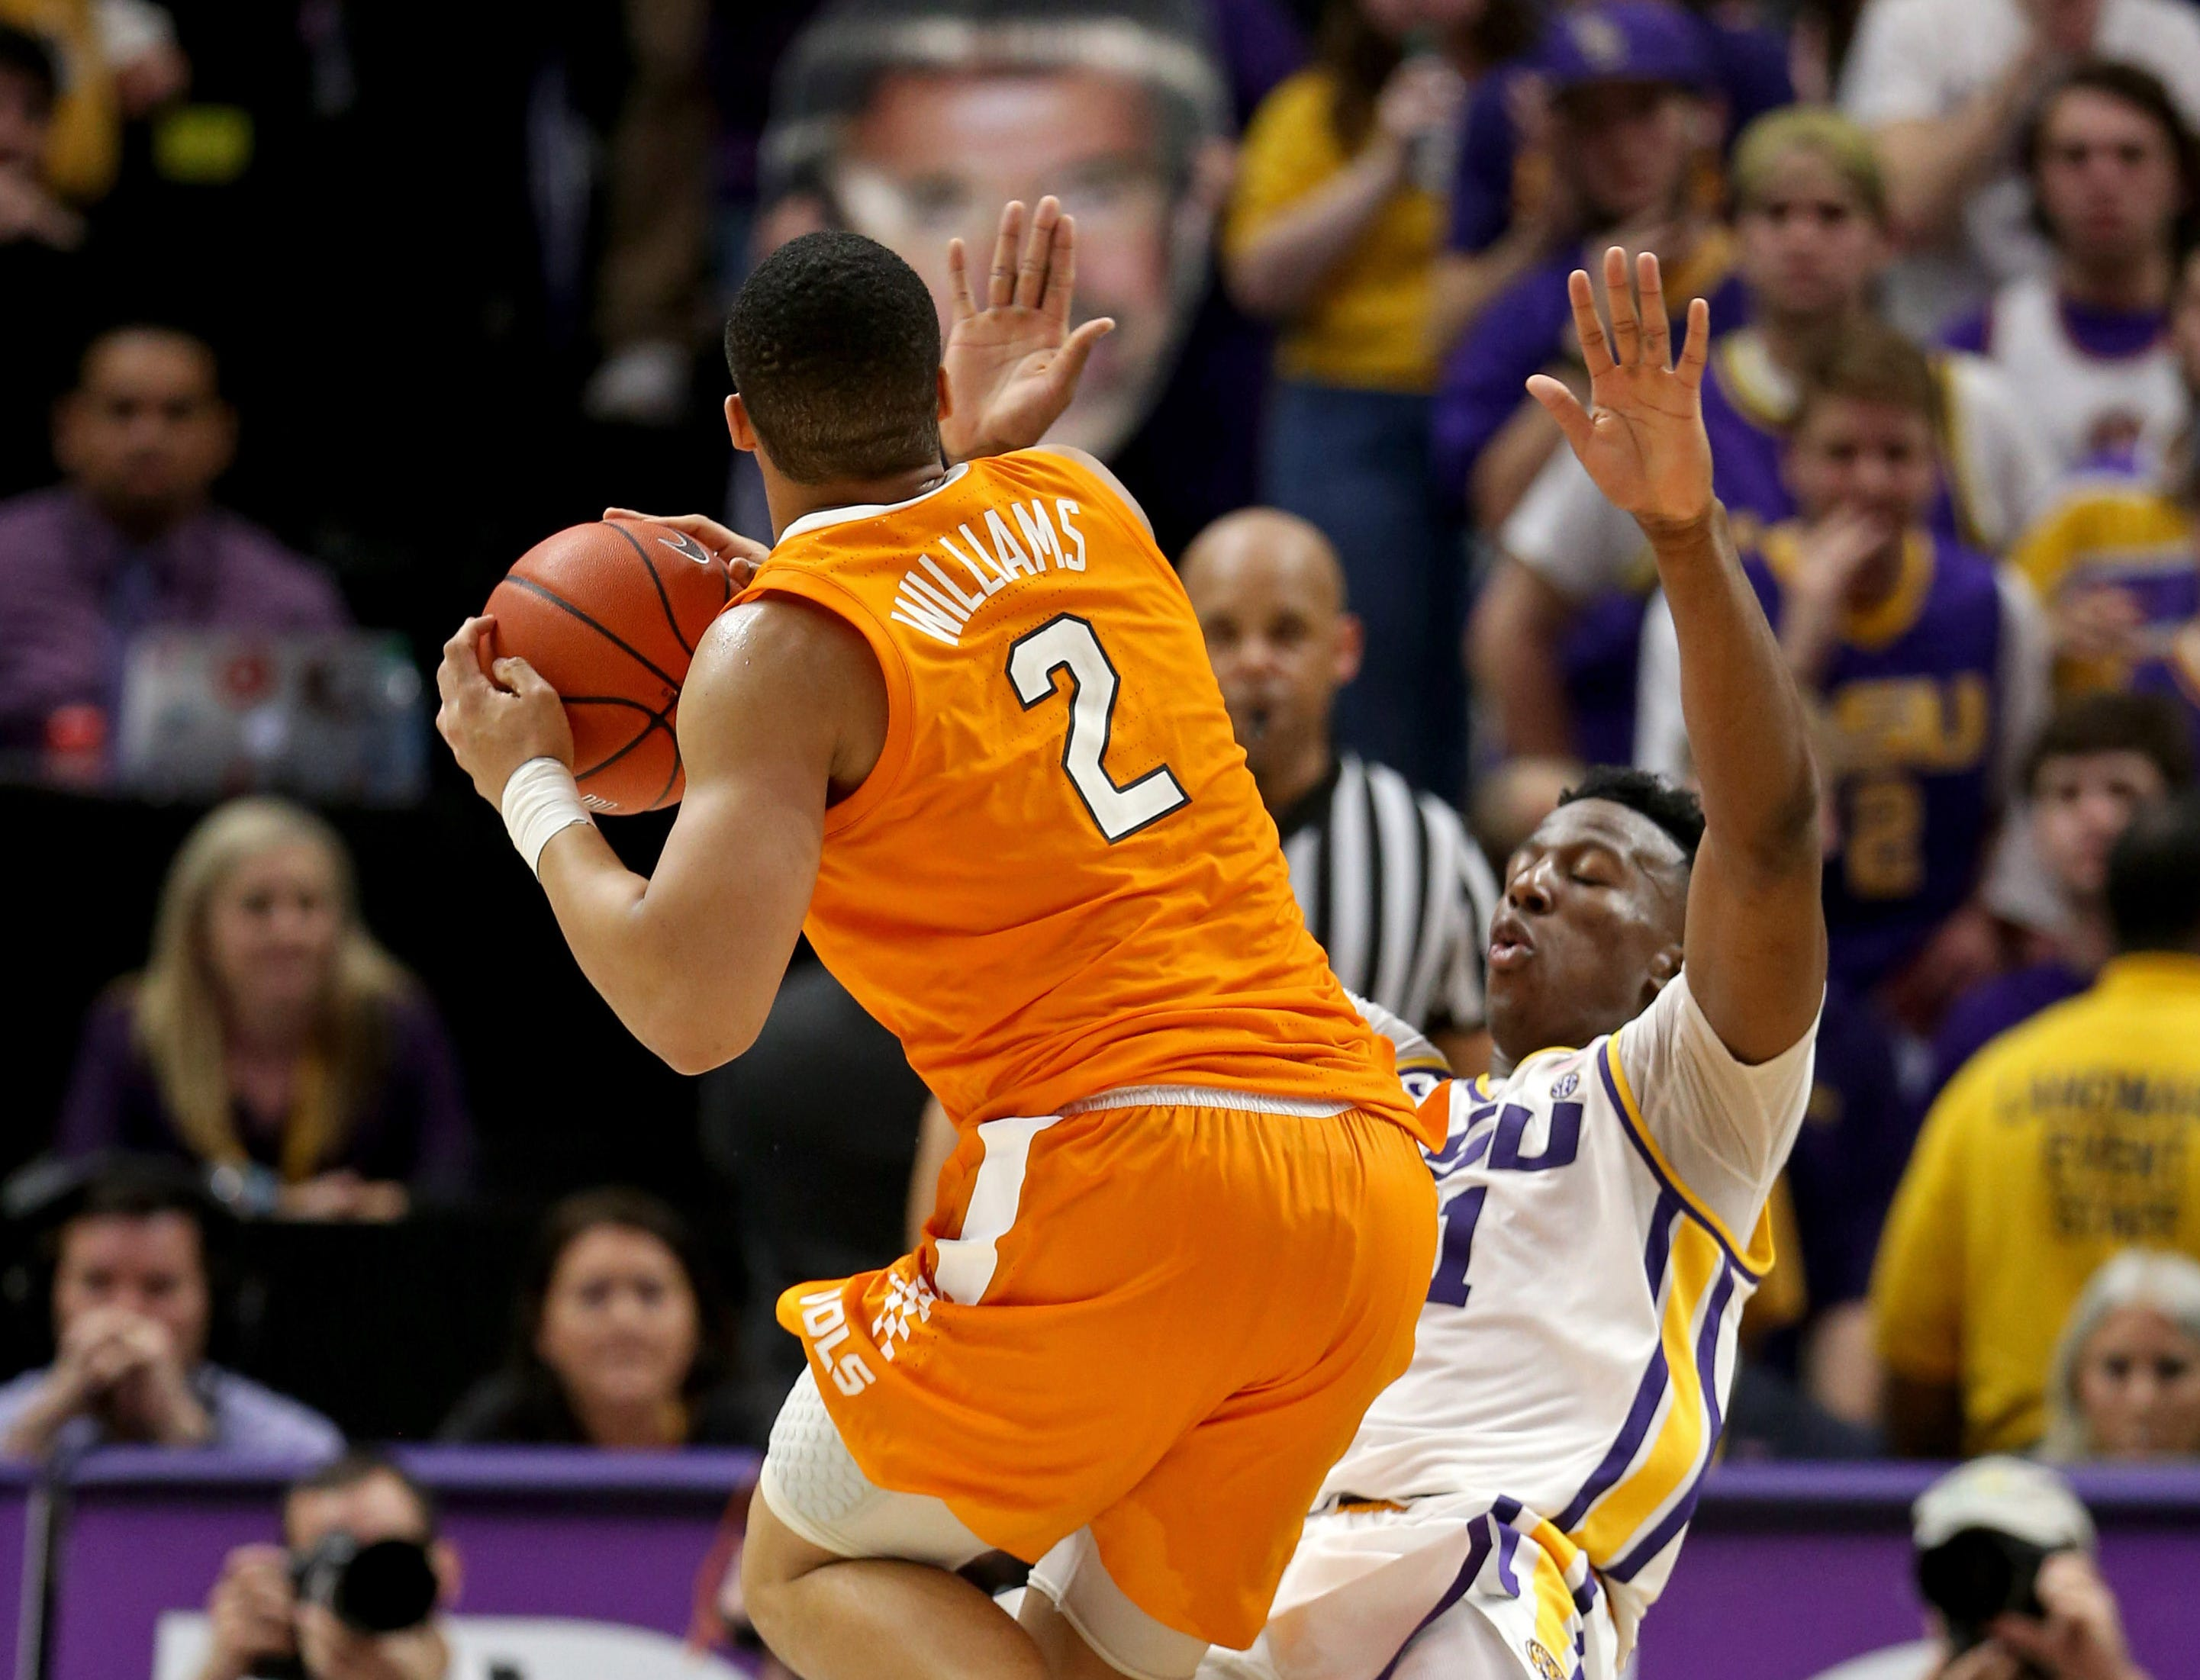 Feb 23, 2019; Baton Rouge, LA, USA; Tennessee Volunteers forward Grant Williams (2) makes an offensive foul in overtime against LSU Tigers forward Kavell Bigby-Williams (11) at the Maravich Assembly Center. LSU won, 82-80 in overtime. Mandatory Credit: Chuck Cook-USA TODAY Sports